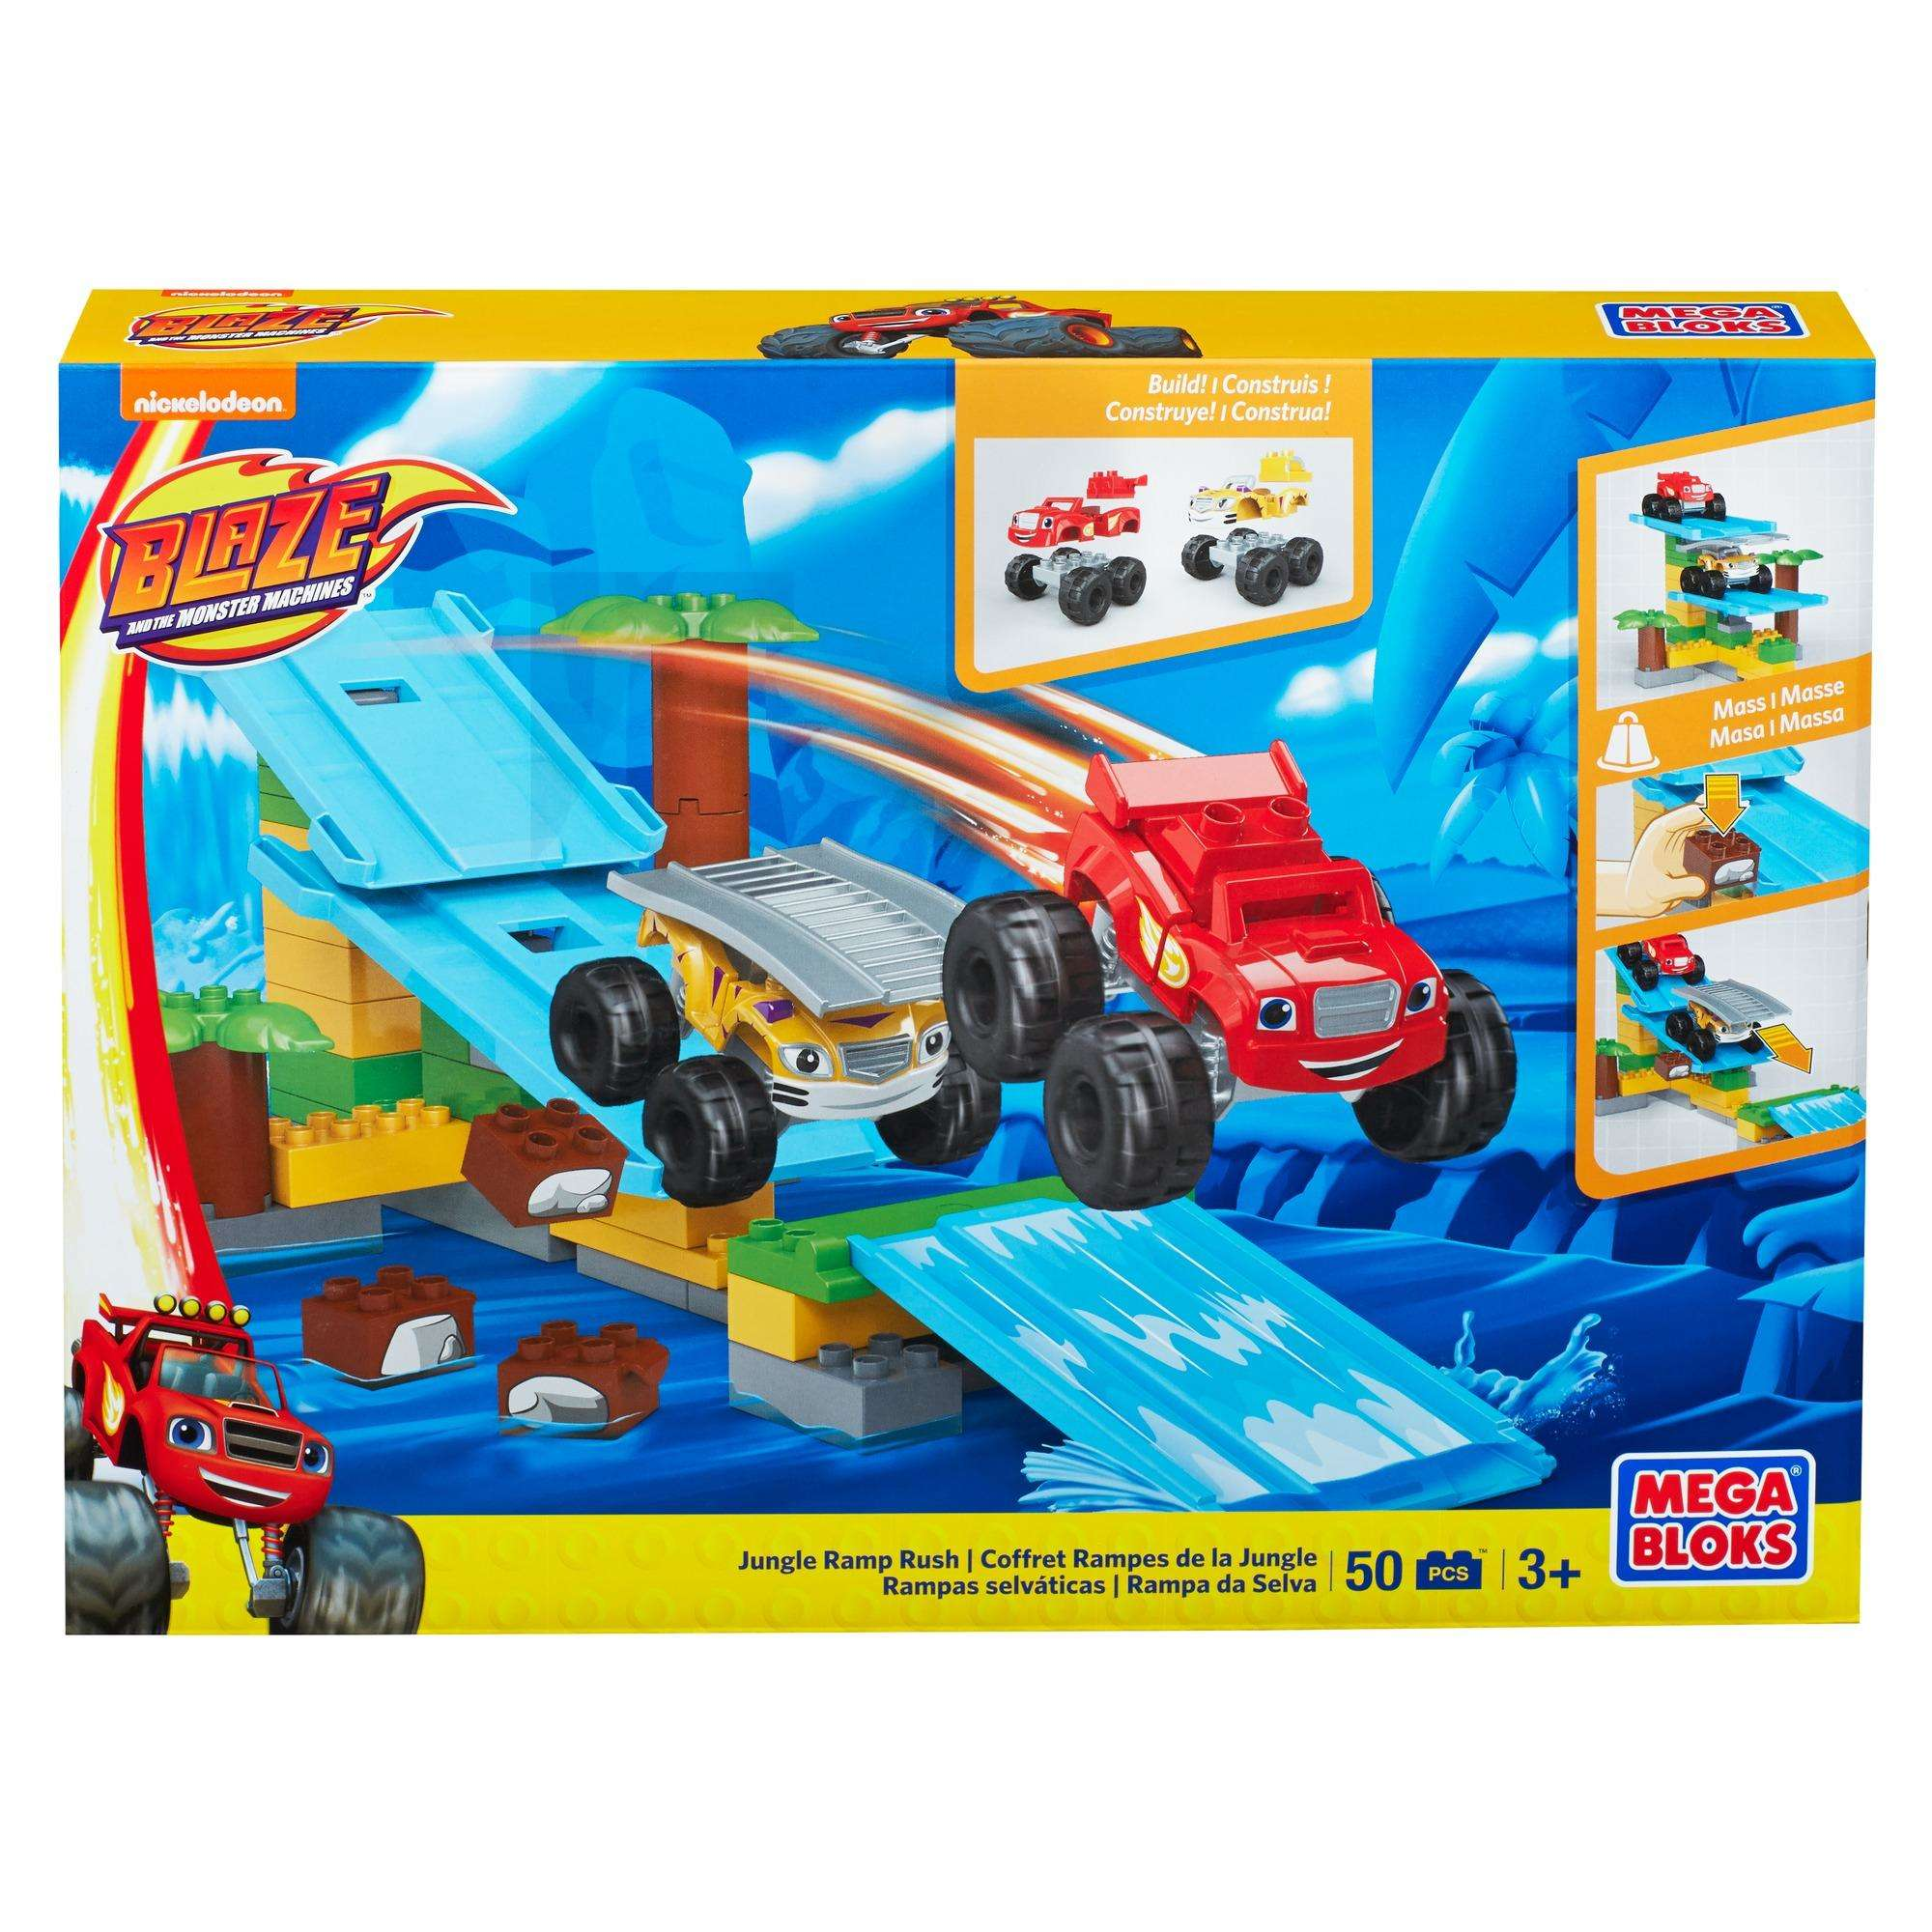 Mega Bloks Nickelodeon Blaze and the Monster Machines Jungle Ramp Rush by Mattel